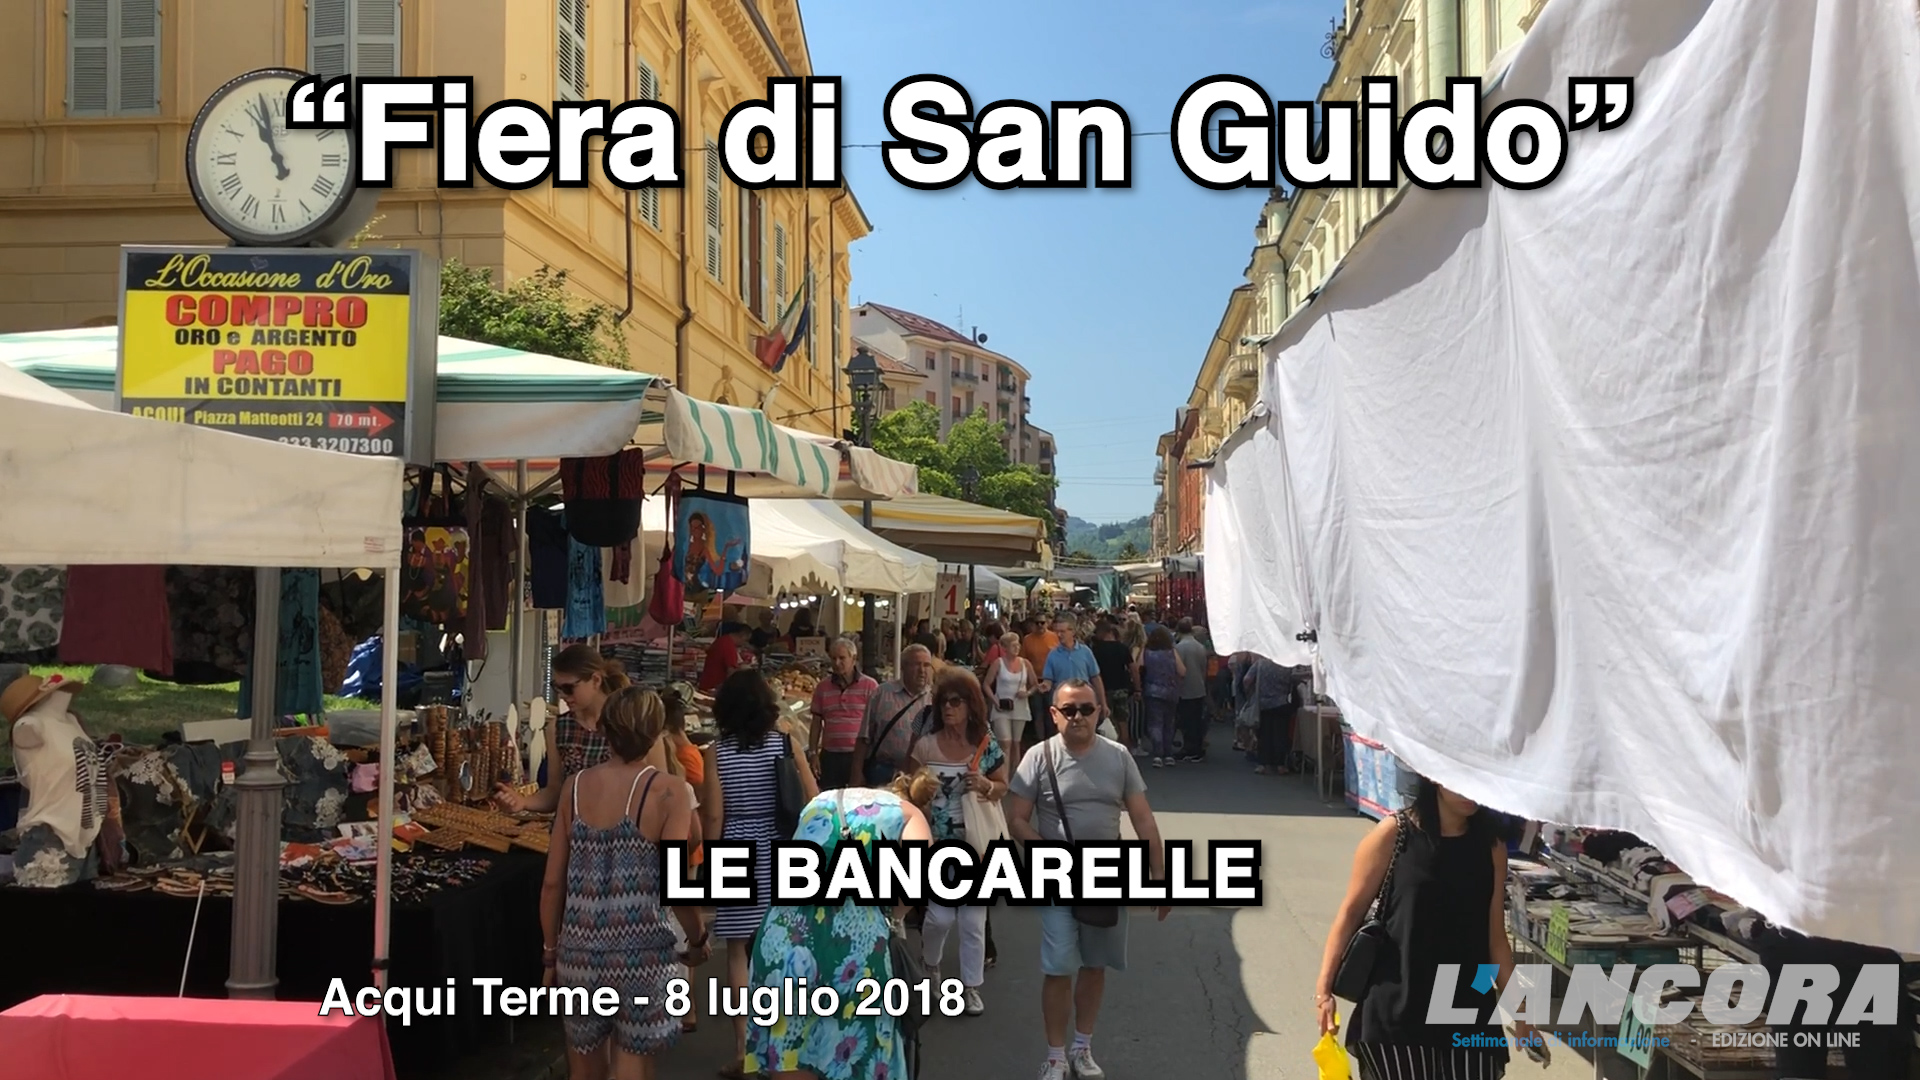 Acqui Terme - Fiera di San Guido, le bancarelle in città (video)